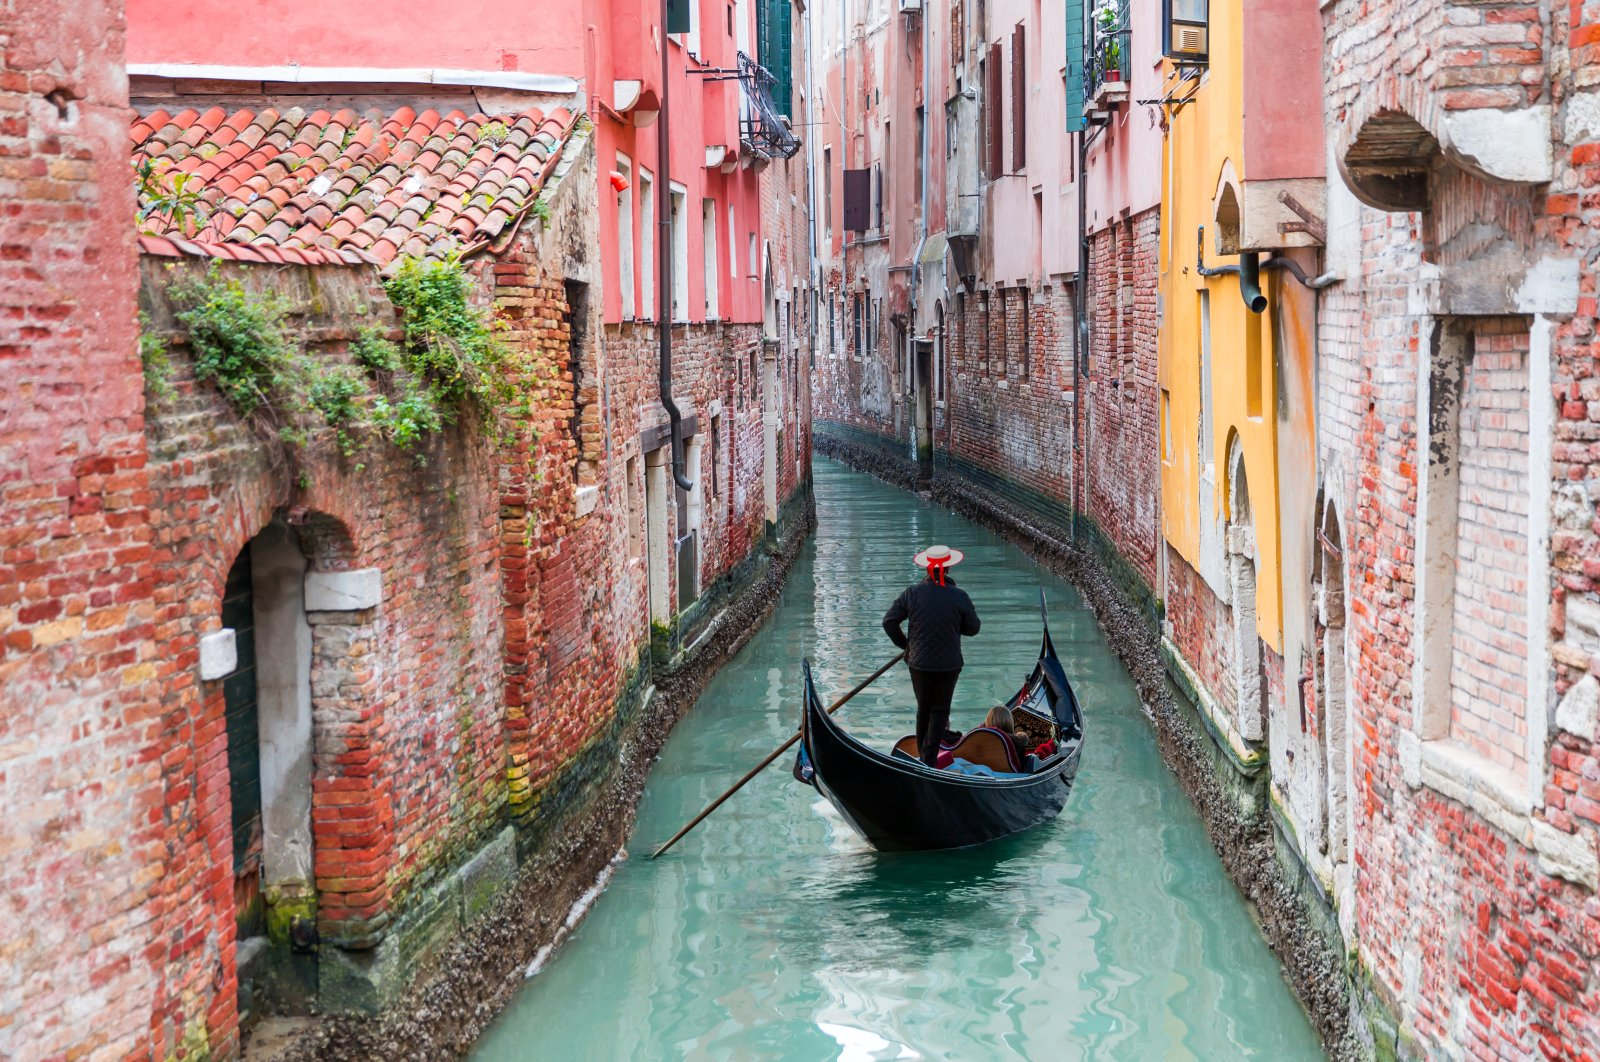 A Venetian gondolier punts a gondola through the green canal waters of Venice, Italy. (Shutterstock Photo)